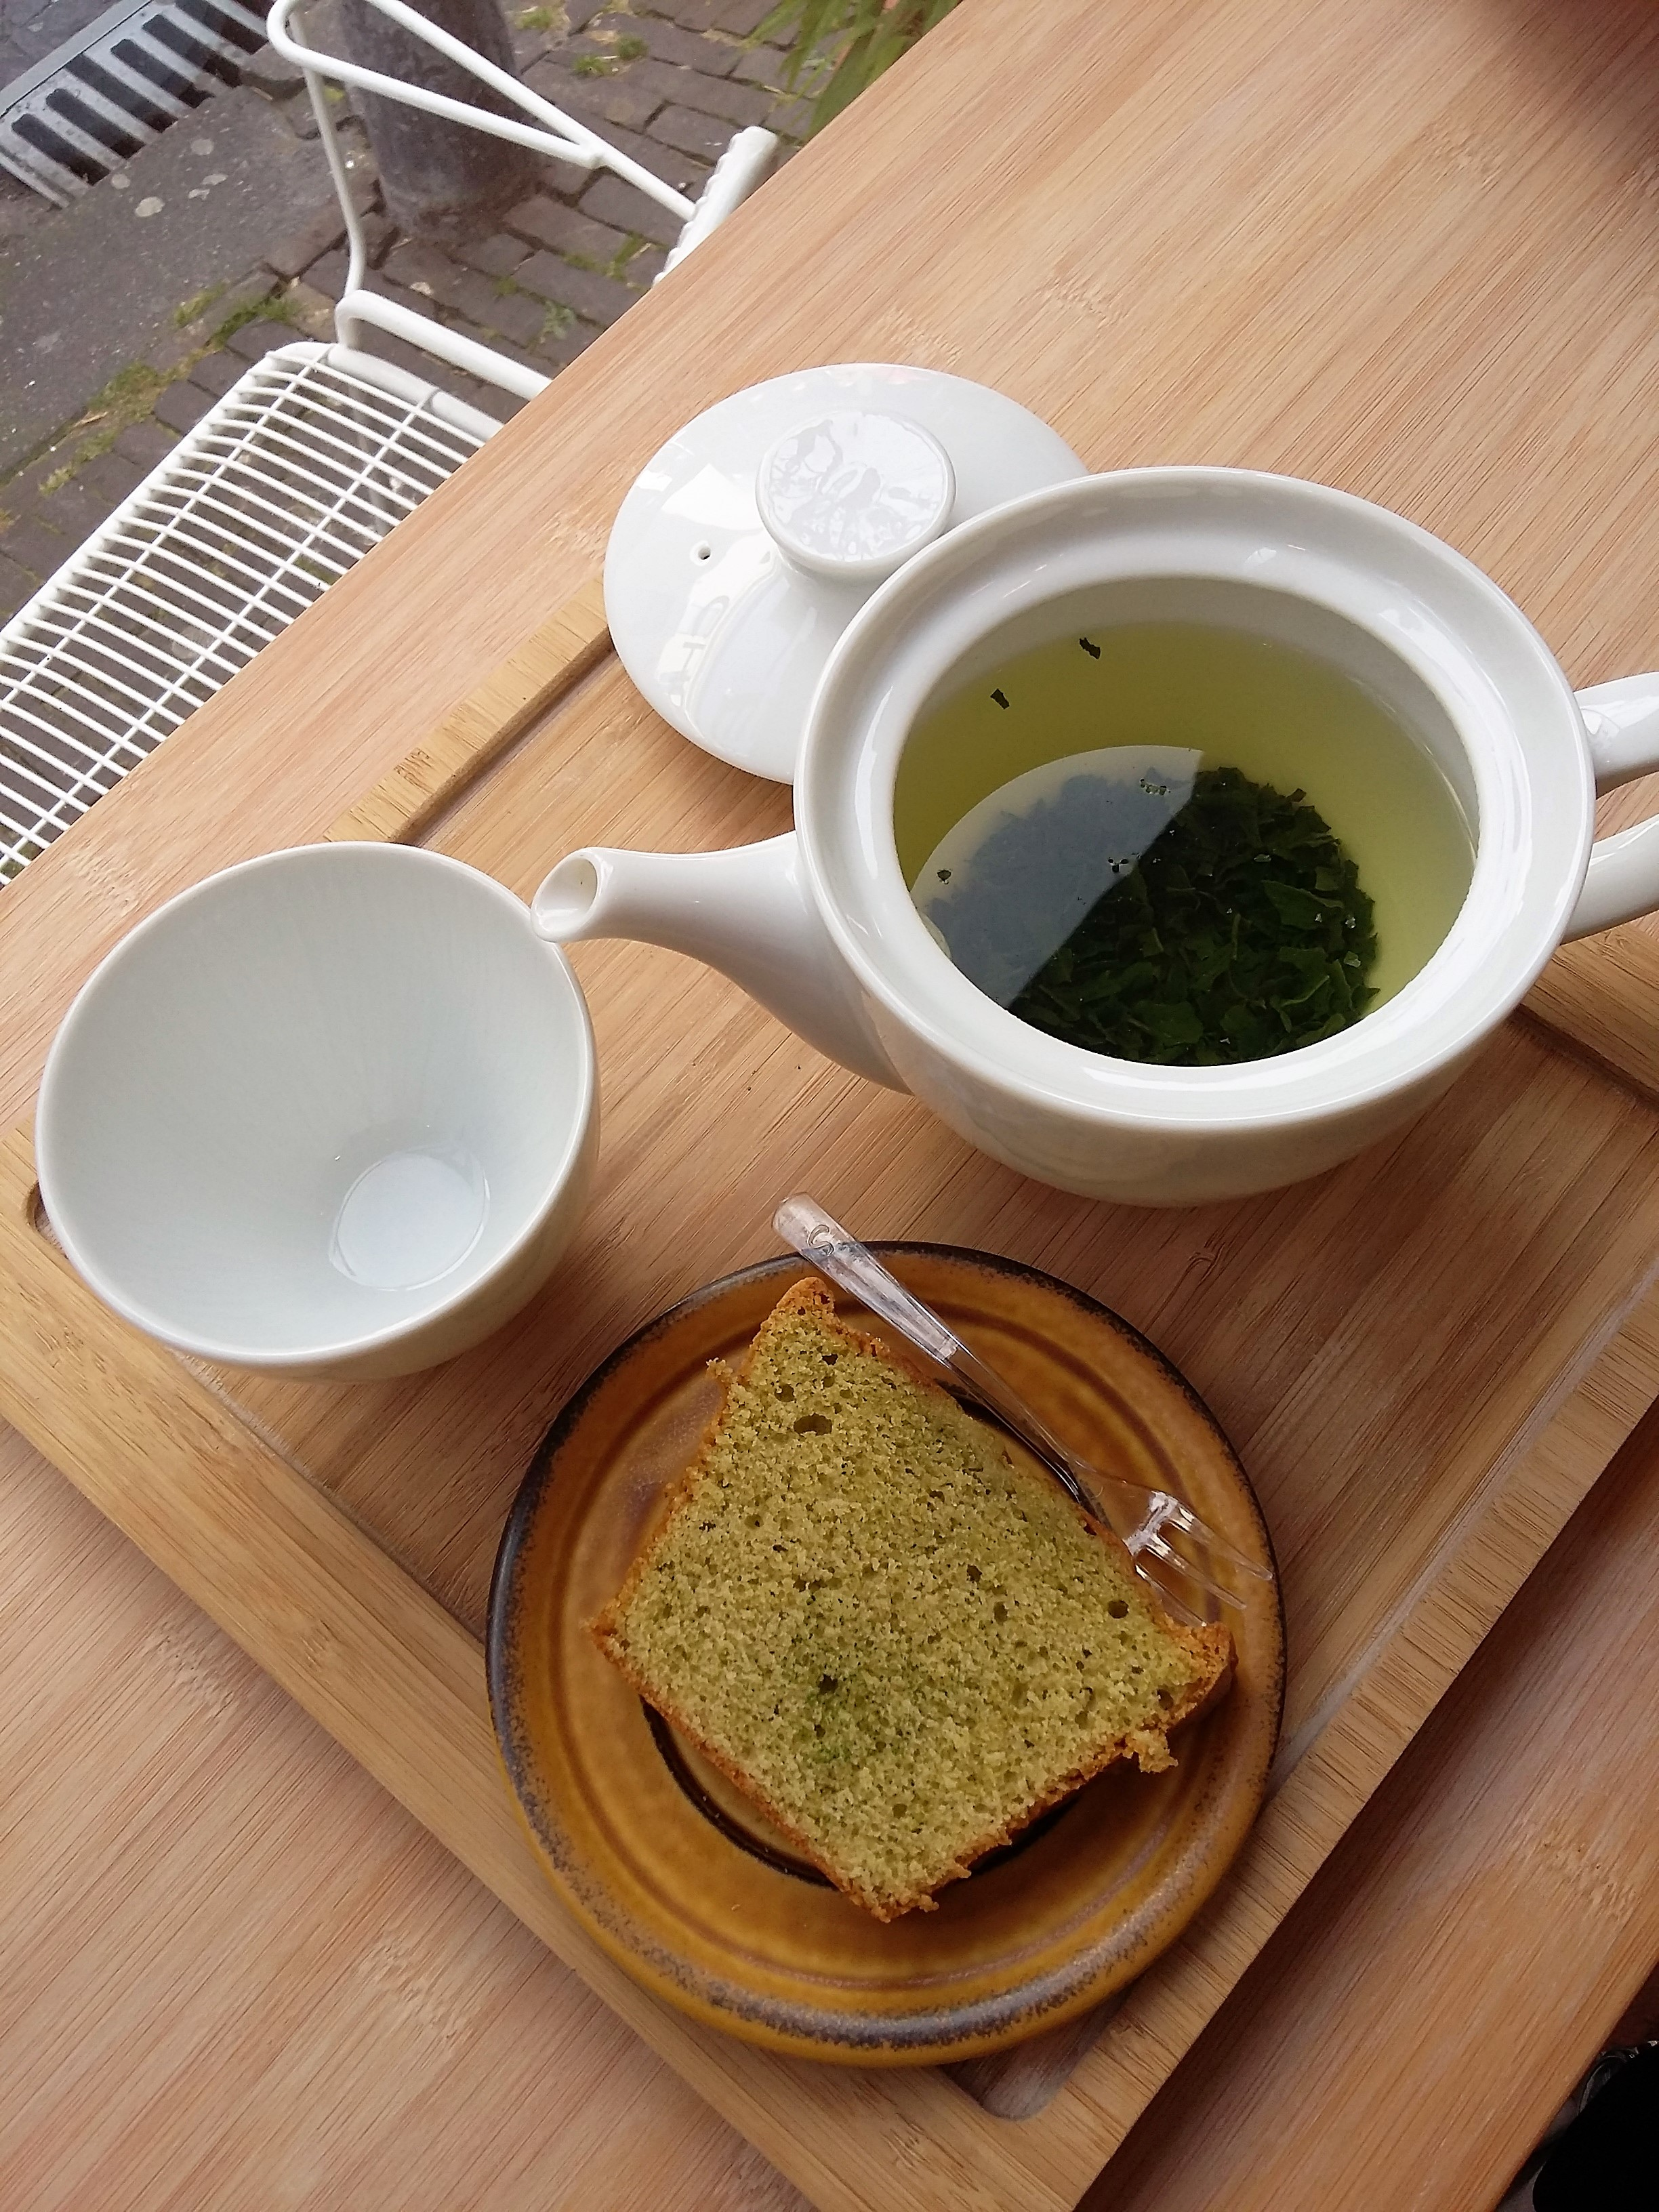 Hug-the-Tea_The_Hague_TeaVoyages_Matcha_Cake